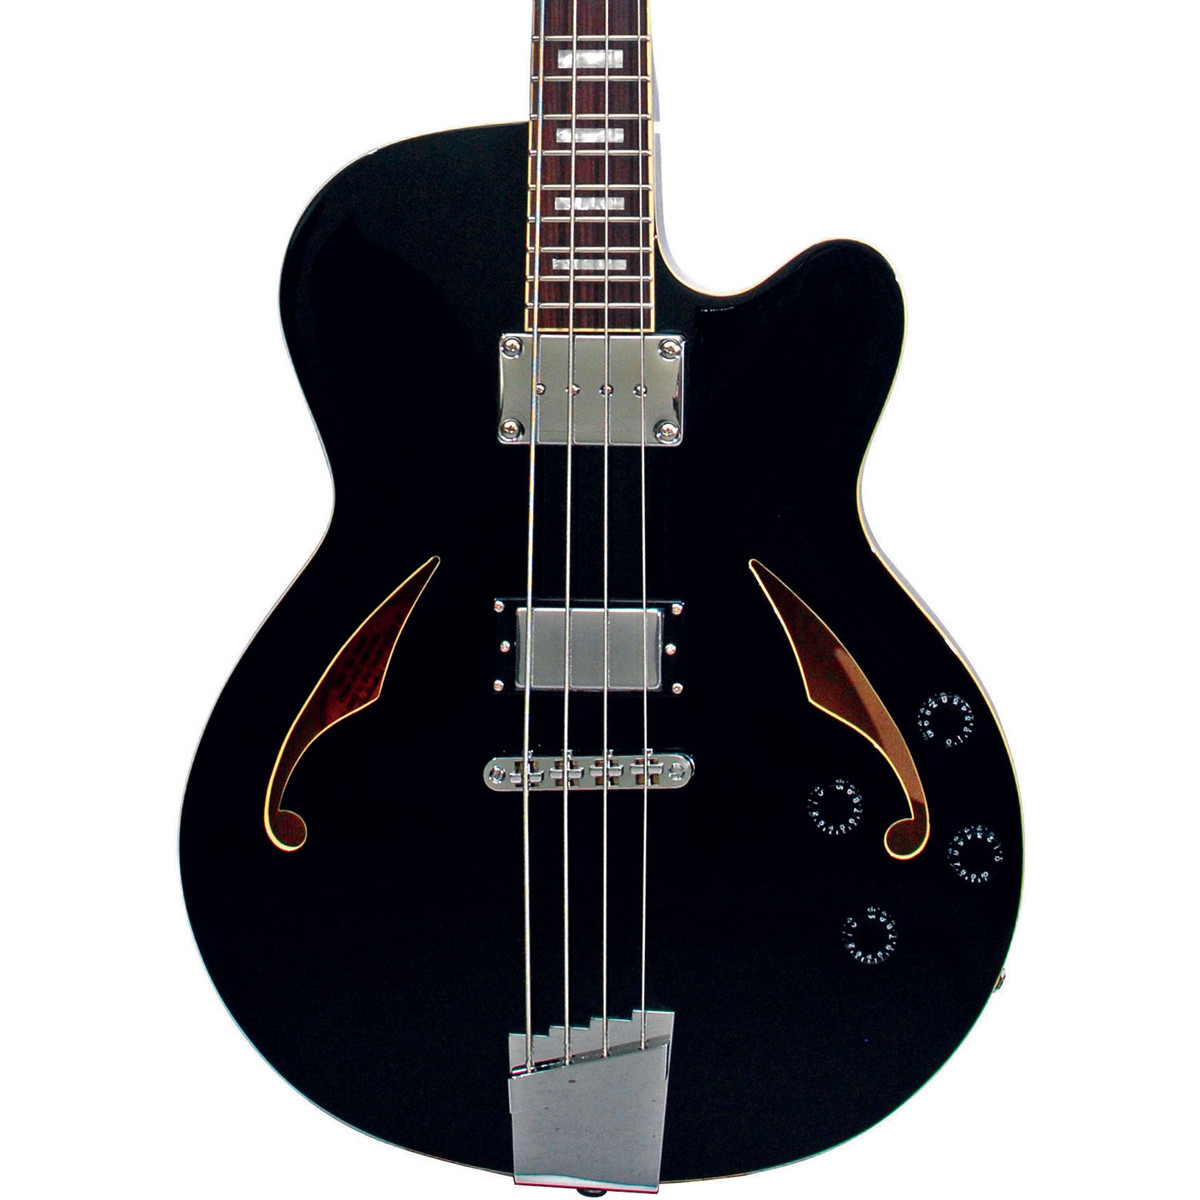 italia torino semi hollow body guitare basse noir avec housse. Black Bedroom Furniture Sets. Home Design Ideas